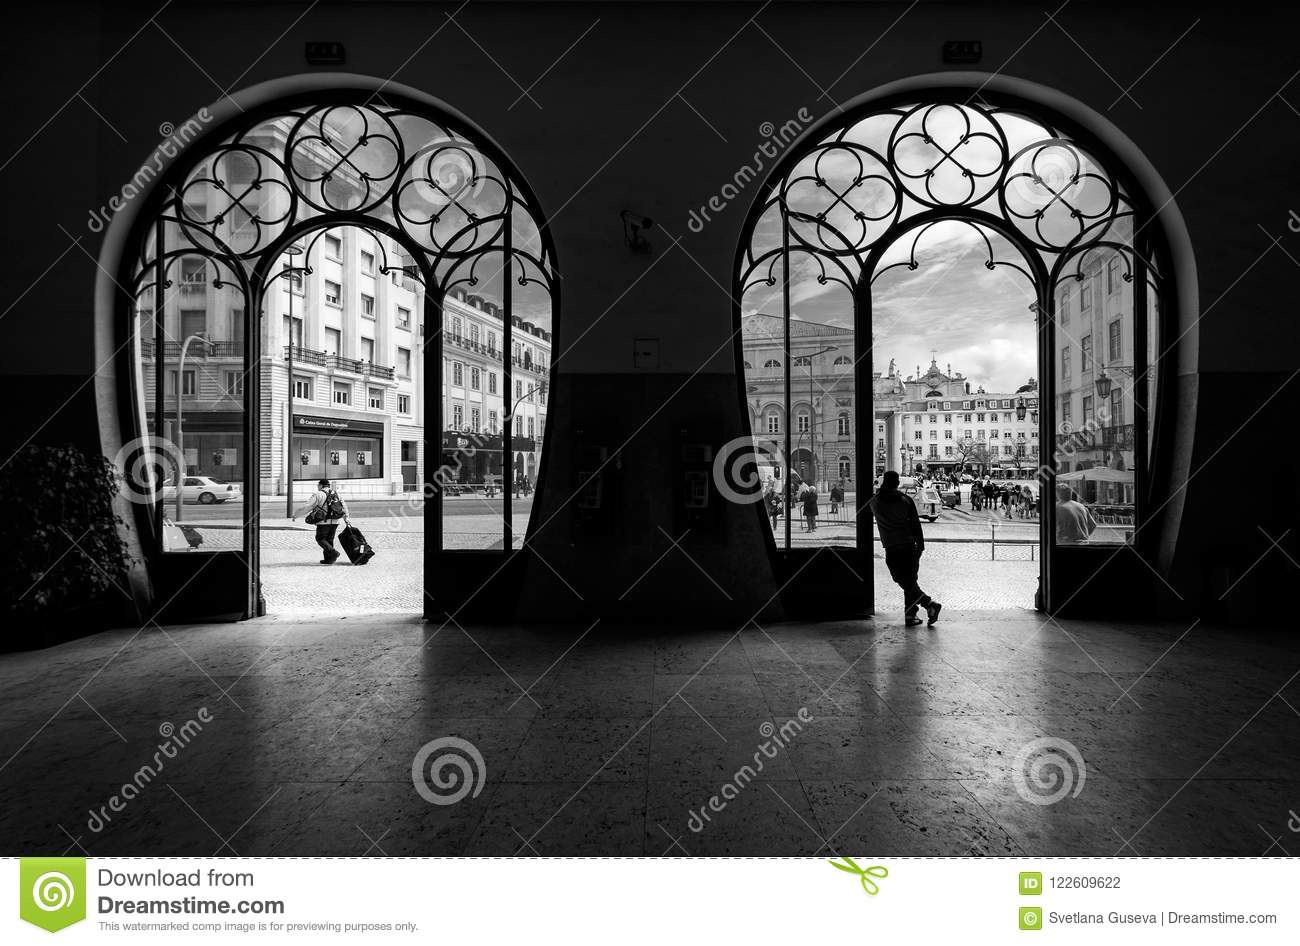 Station Rossio Oude stad van Lissabon portugal Rebecca 36